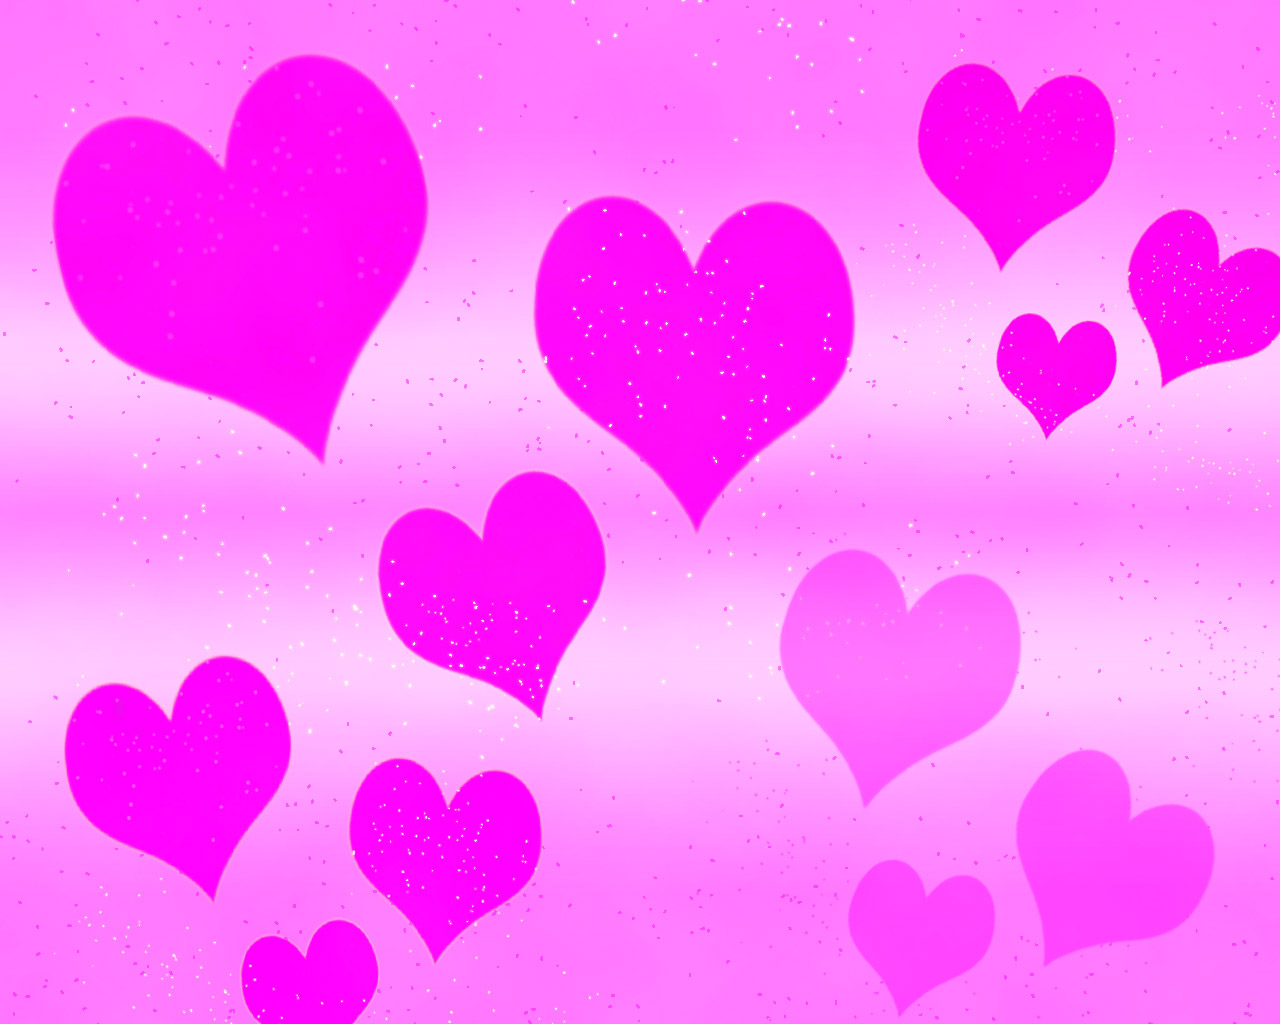 Free Download Pink Heart Wallpaper 10058 Hd Wallpapers In Love